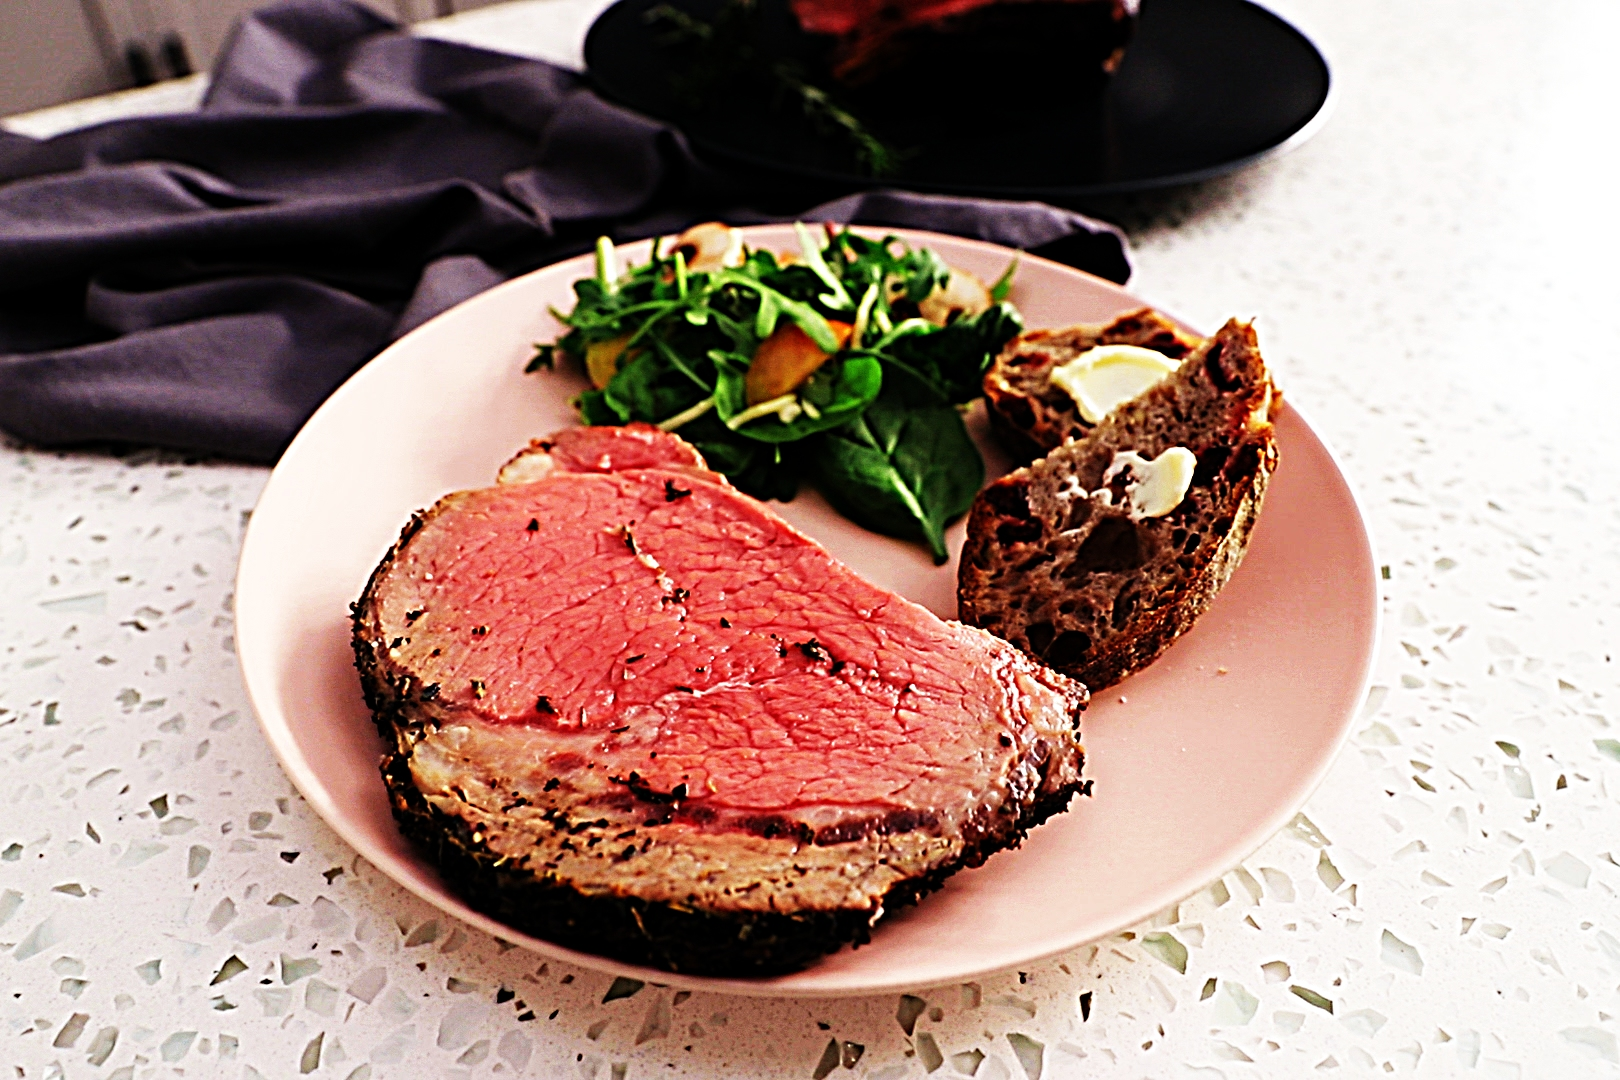 Stupid-Easy Recipe for Prime Rib with Herbes de Provence Crust (#1 Top-Rated)